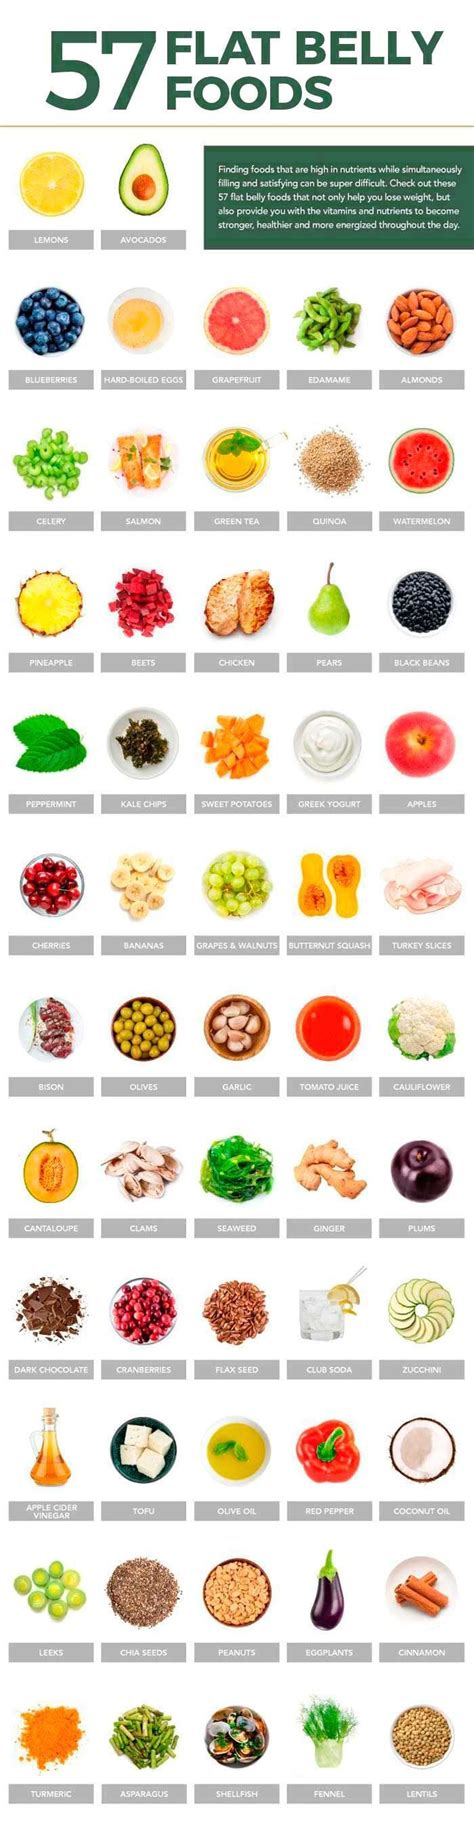 flat belly foods ideas  pinterest food